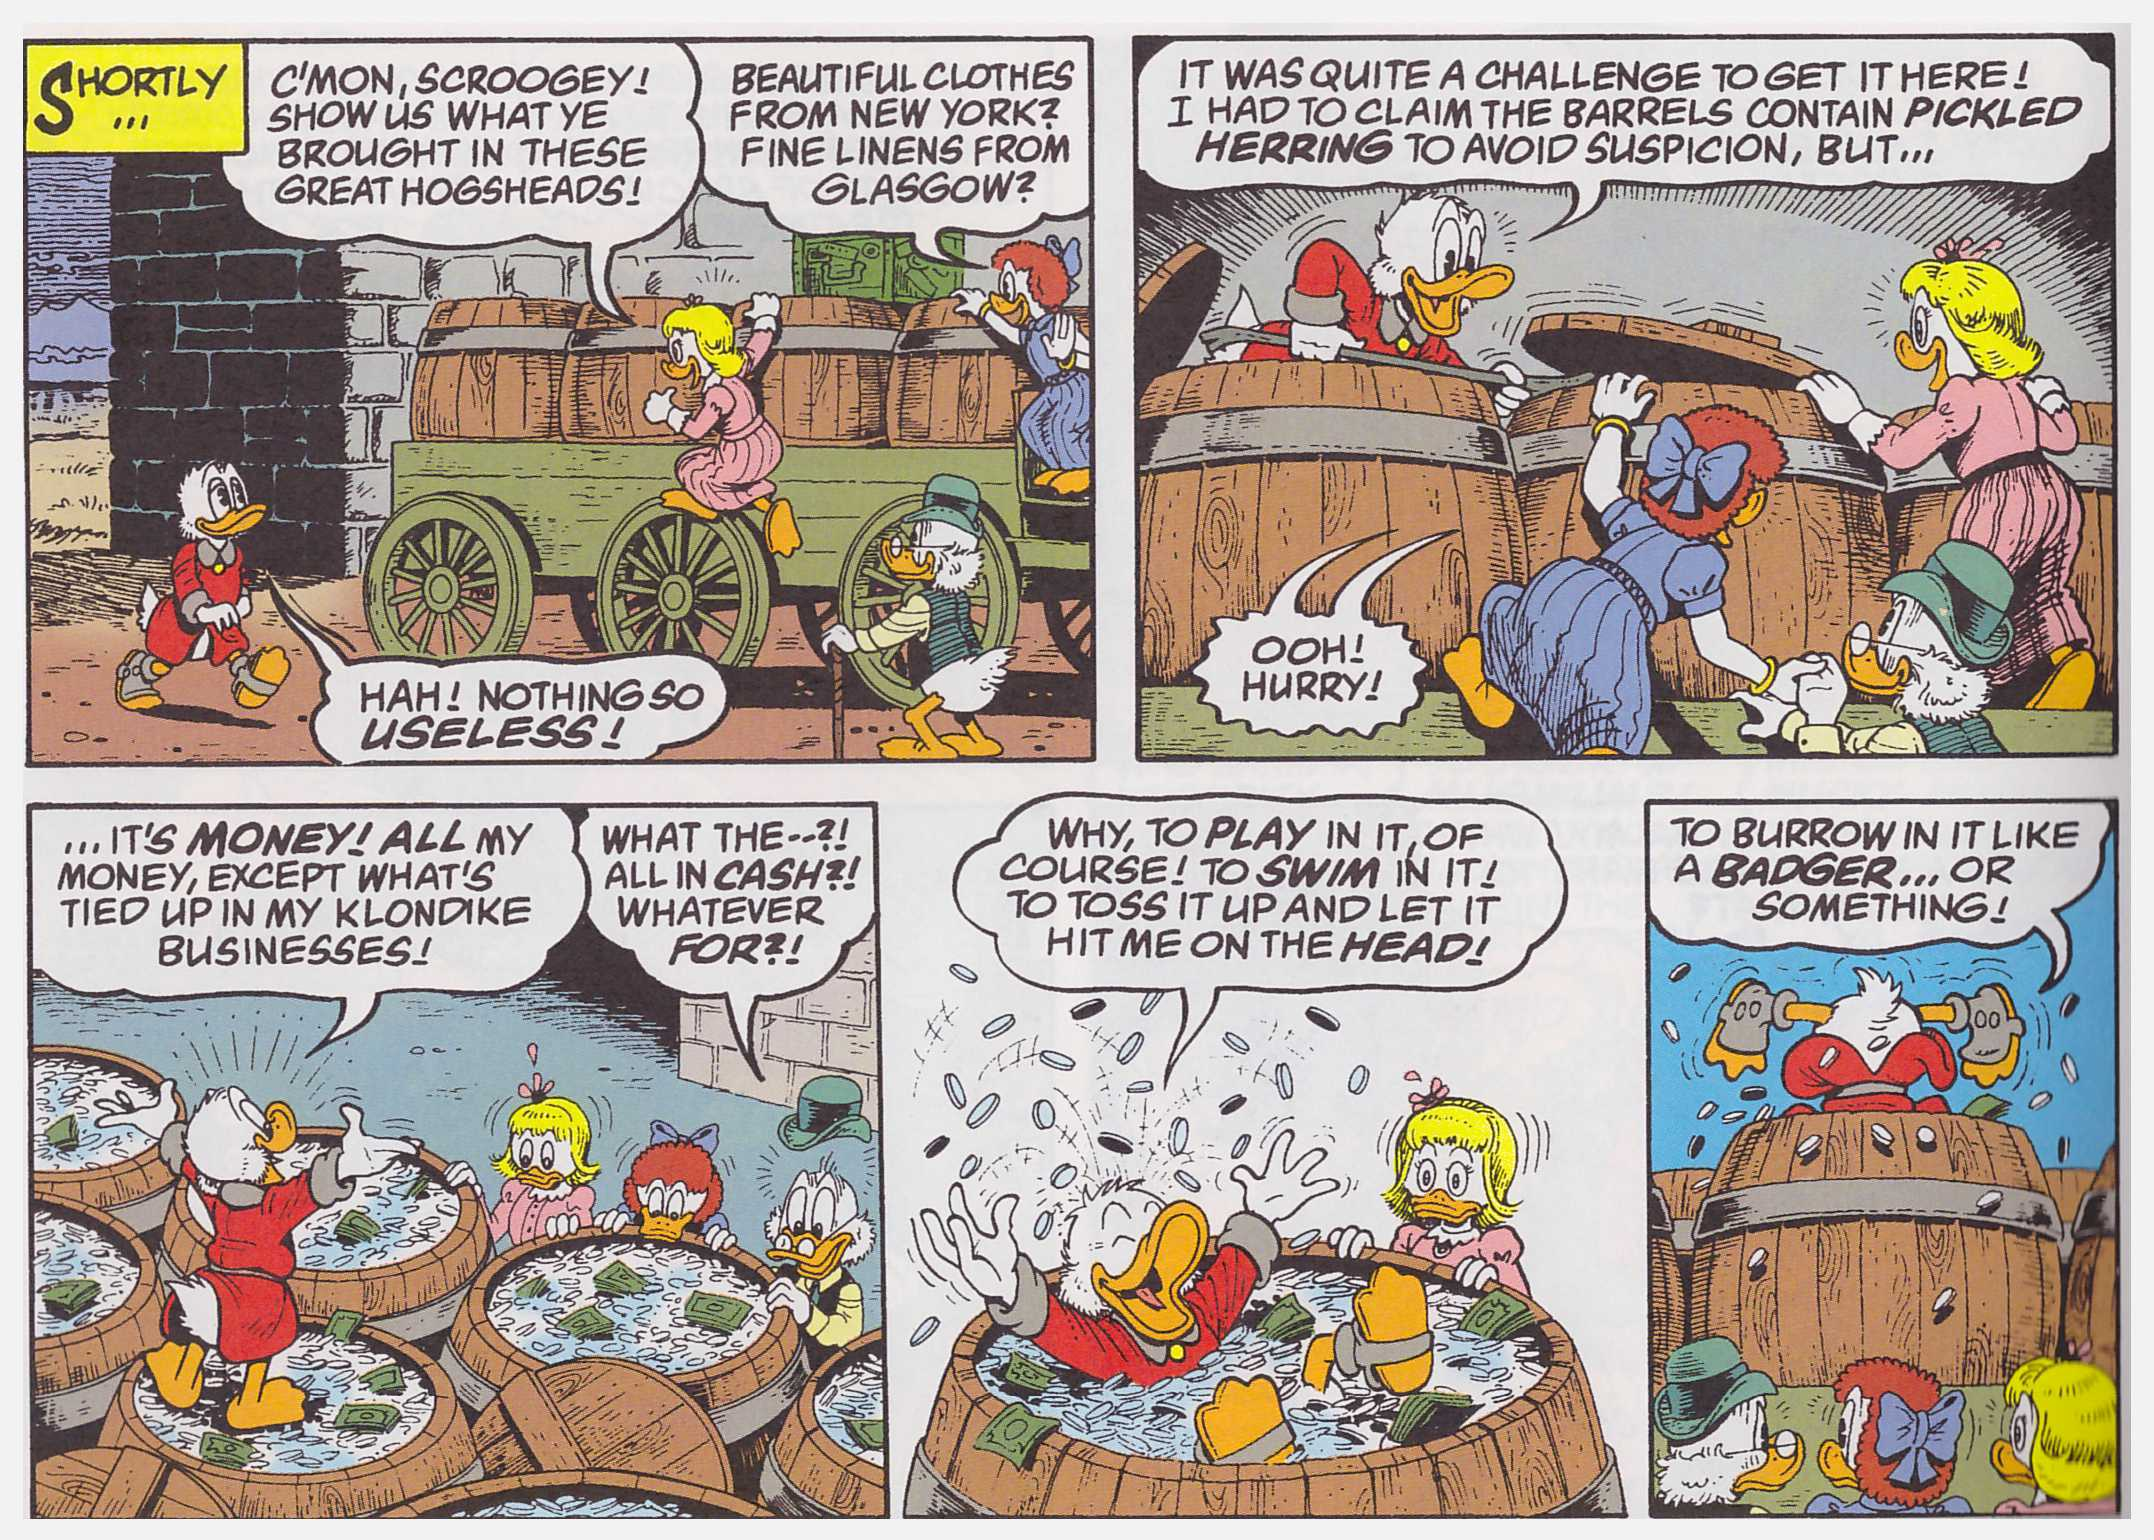 Life and Times of Scrooge McDuck review